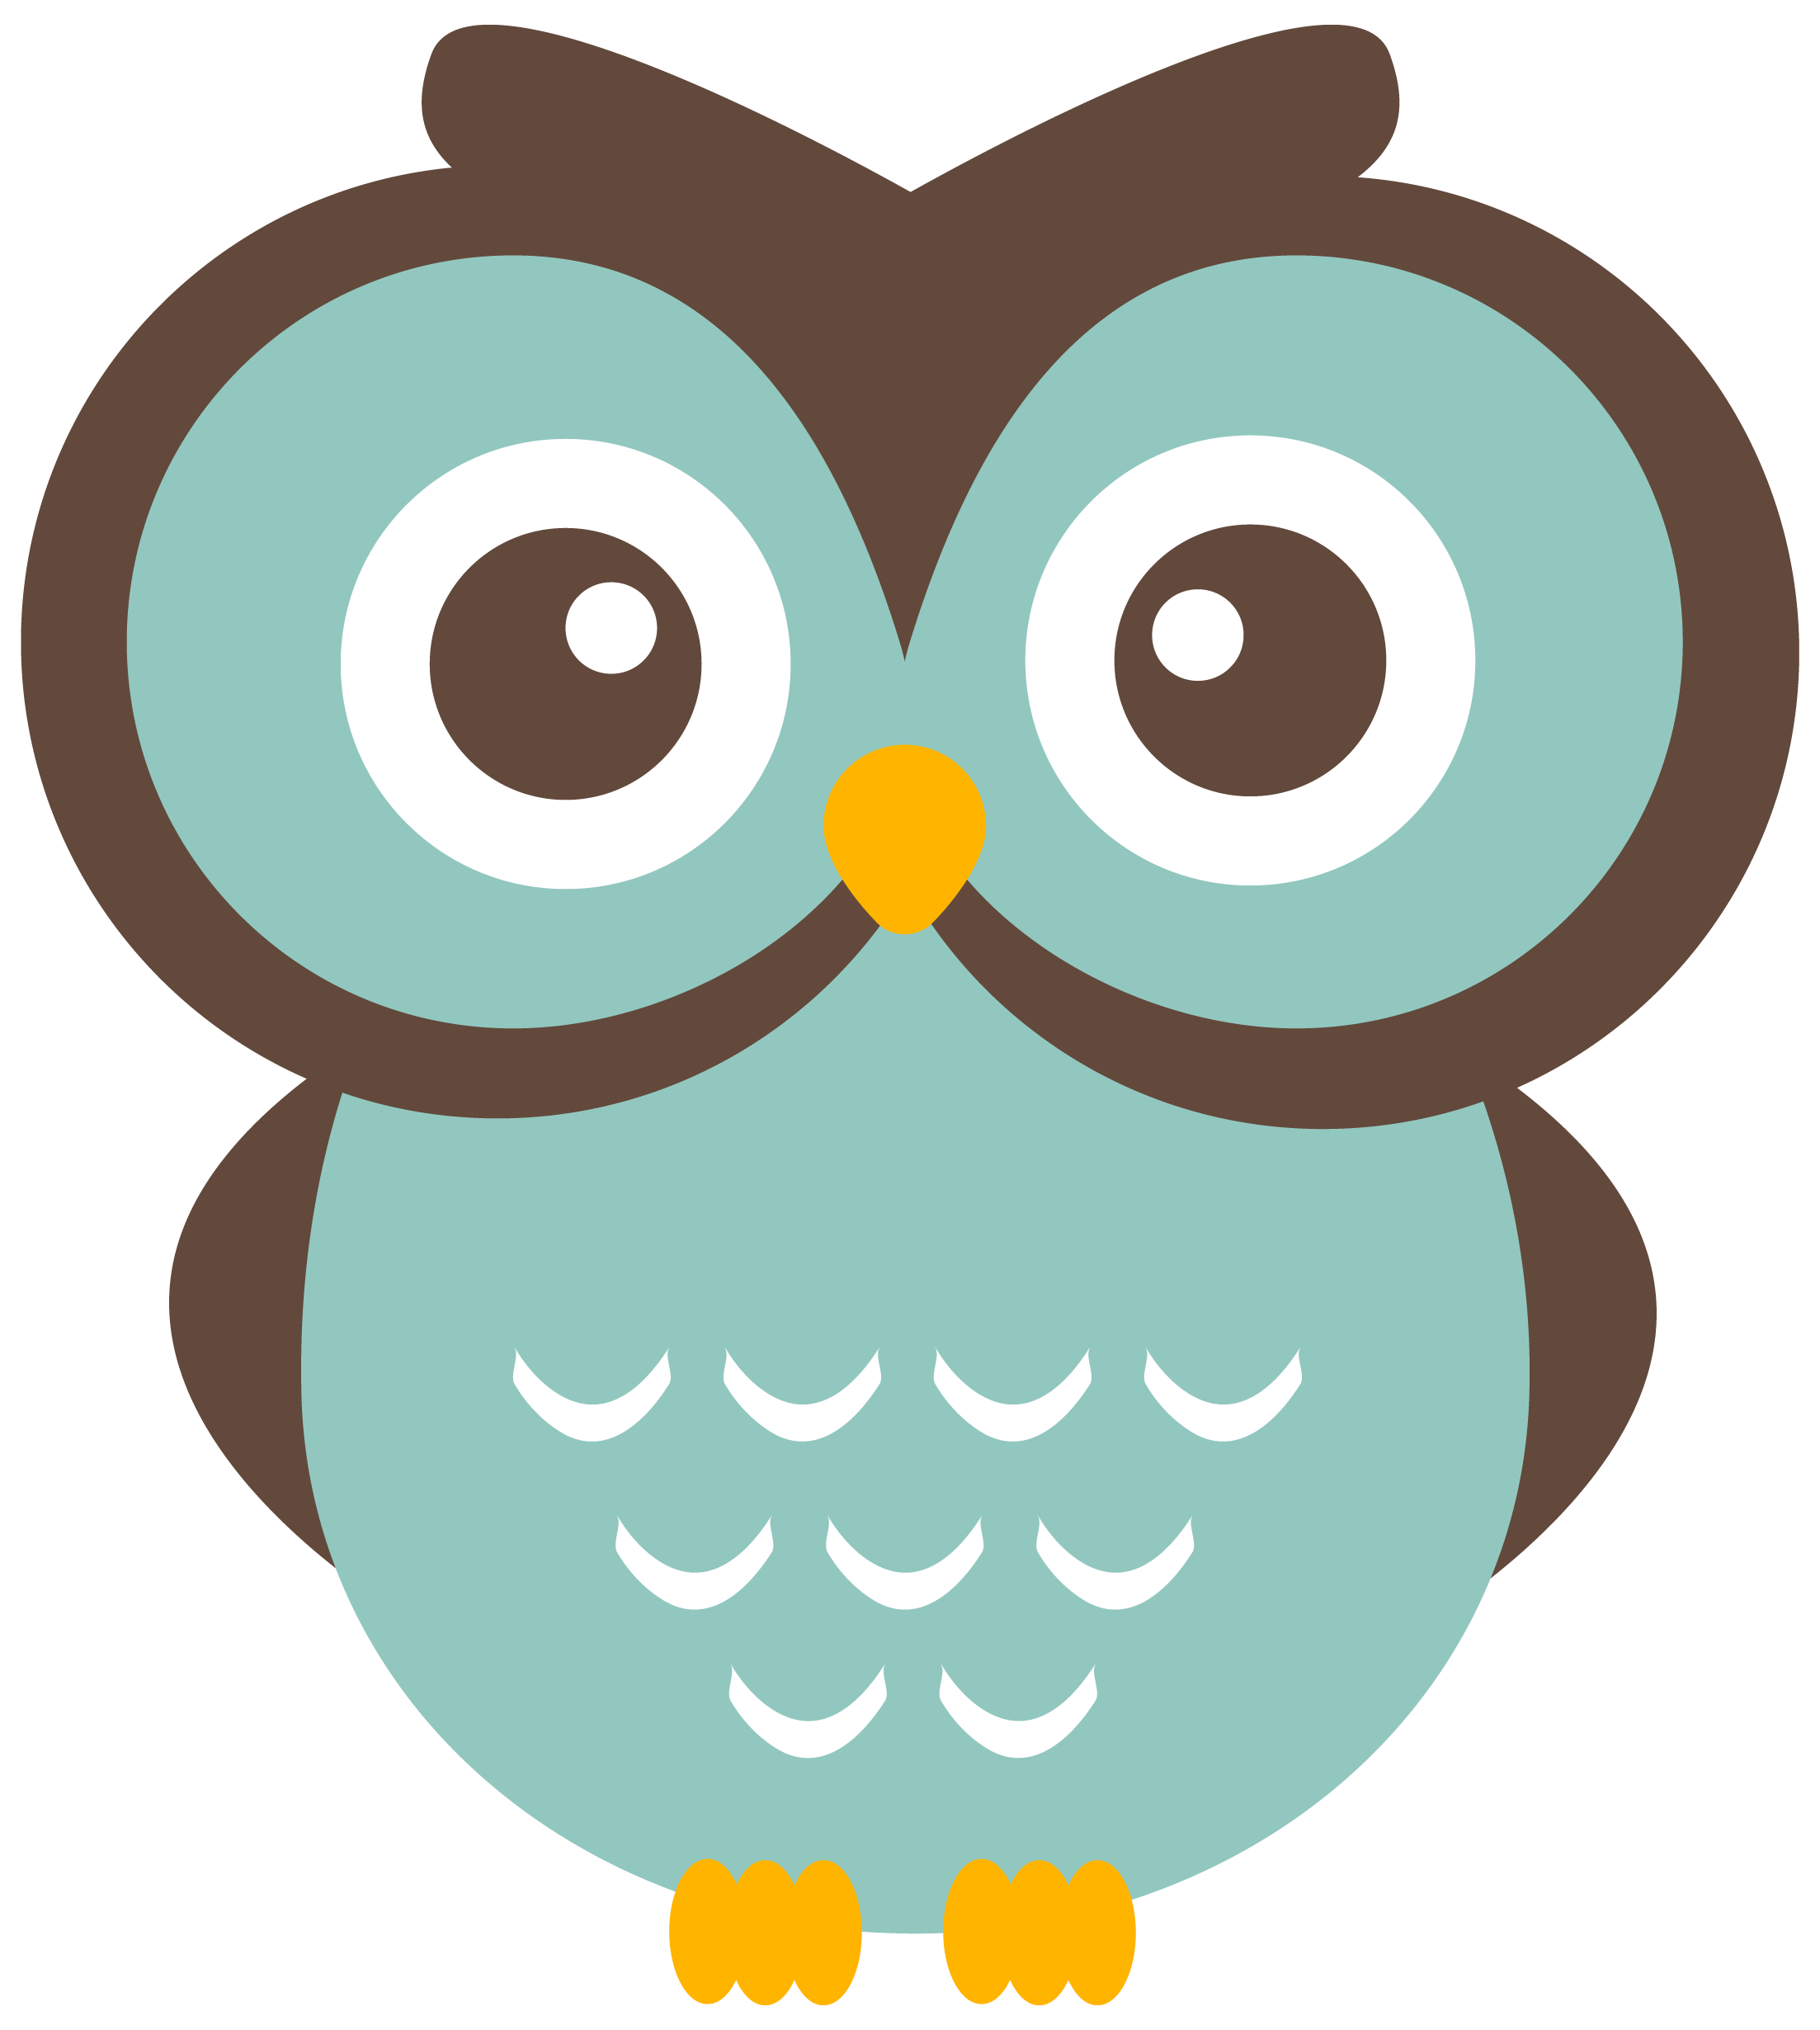 Teal download to use. Clipart free owl